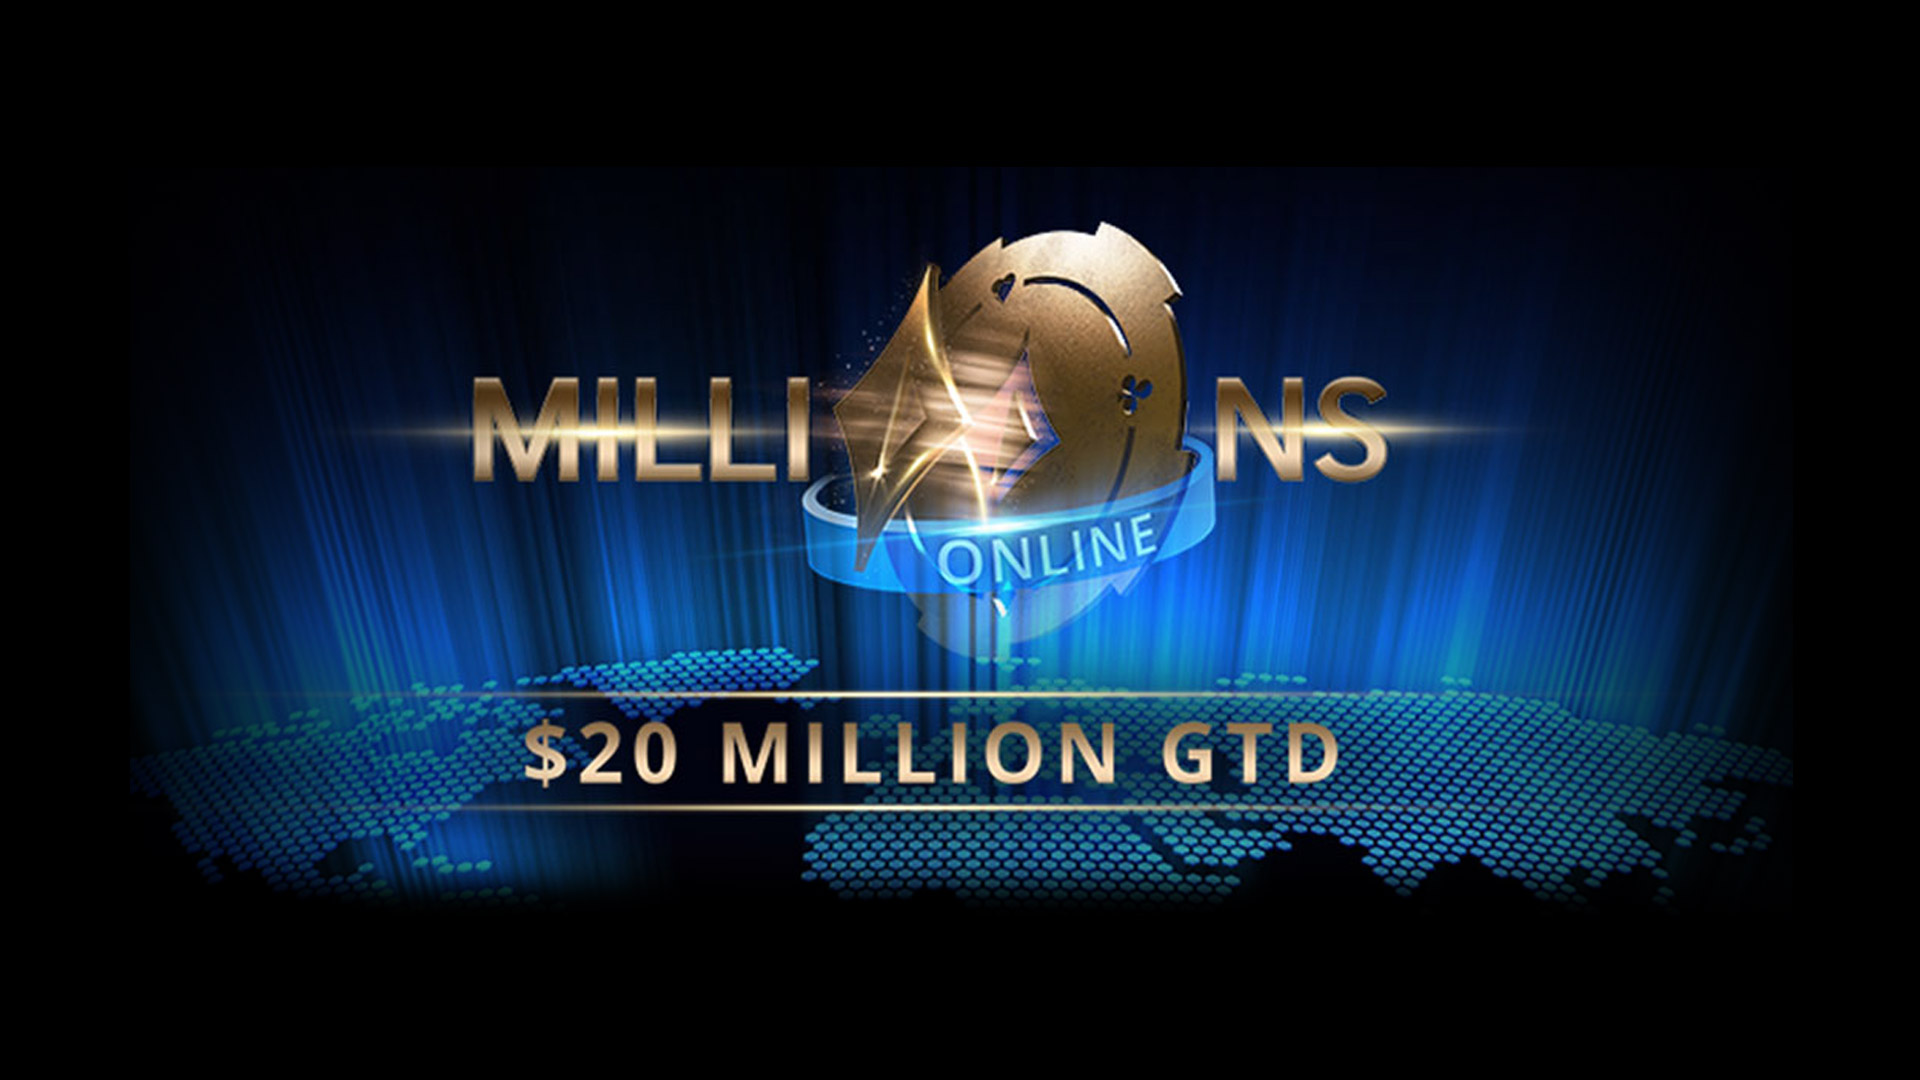 MILLIONS Online is upon us